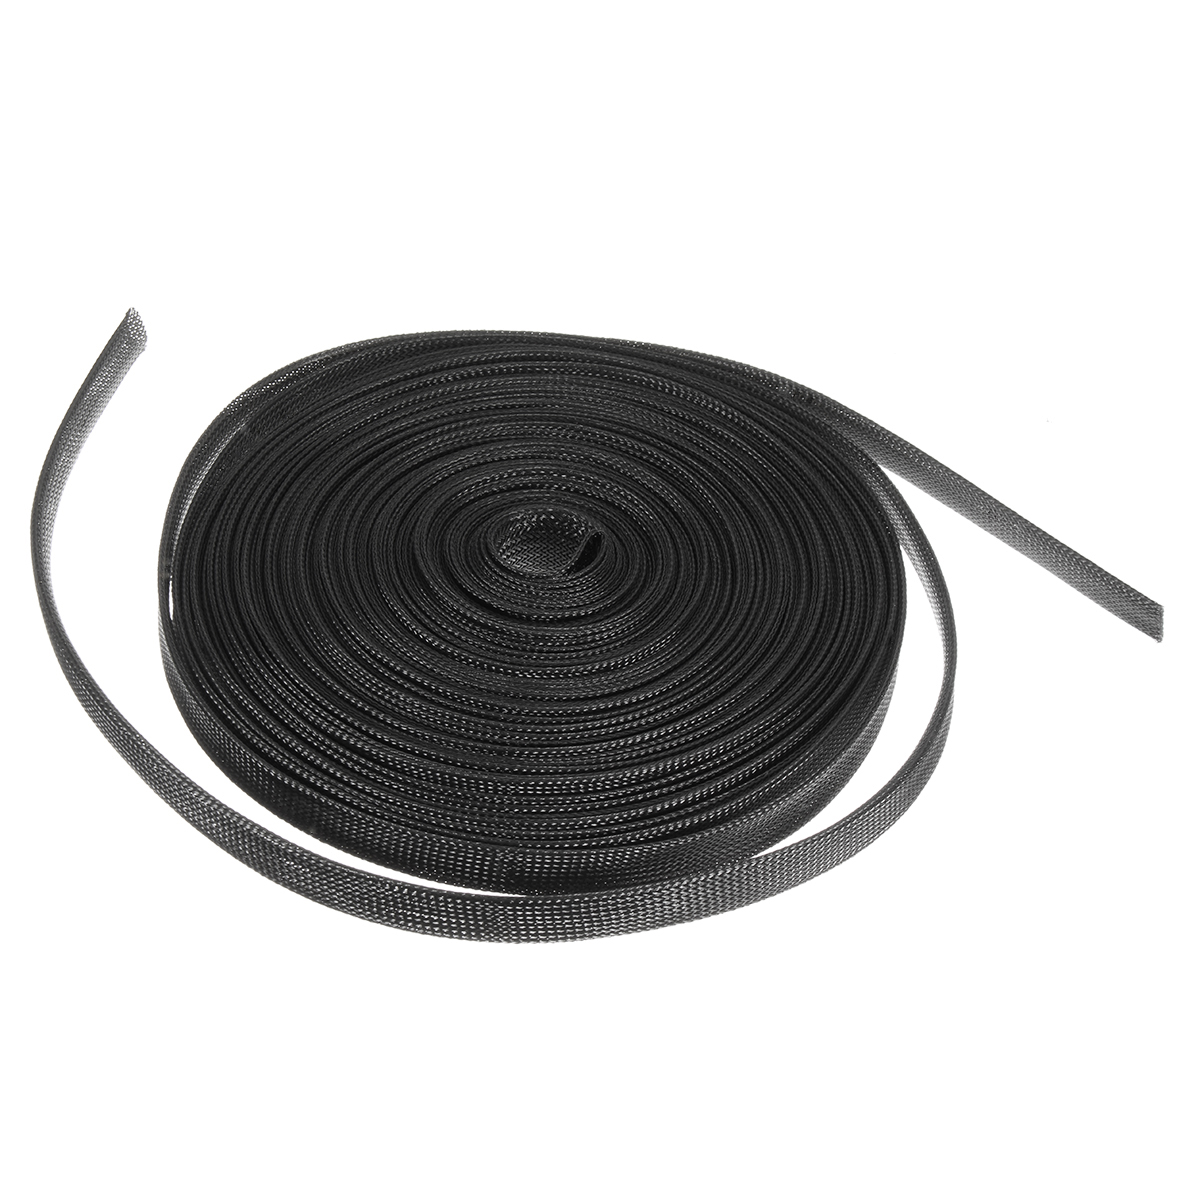 30m Nylon Black Expandable Sheathing Tubing Wire Cable Sleeving Insulation Tight Braided Loom 8/10/12/15/20mm For Wrapping Cable30m Nylon Black Expandable Sheathing Tubing Wire Cable Sleeving Insulation Tight Braided Loom 8/10/12/15/20mm For Wrapping Cable